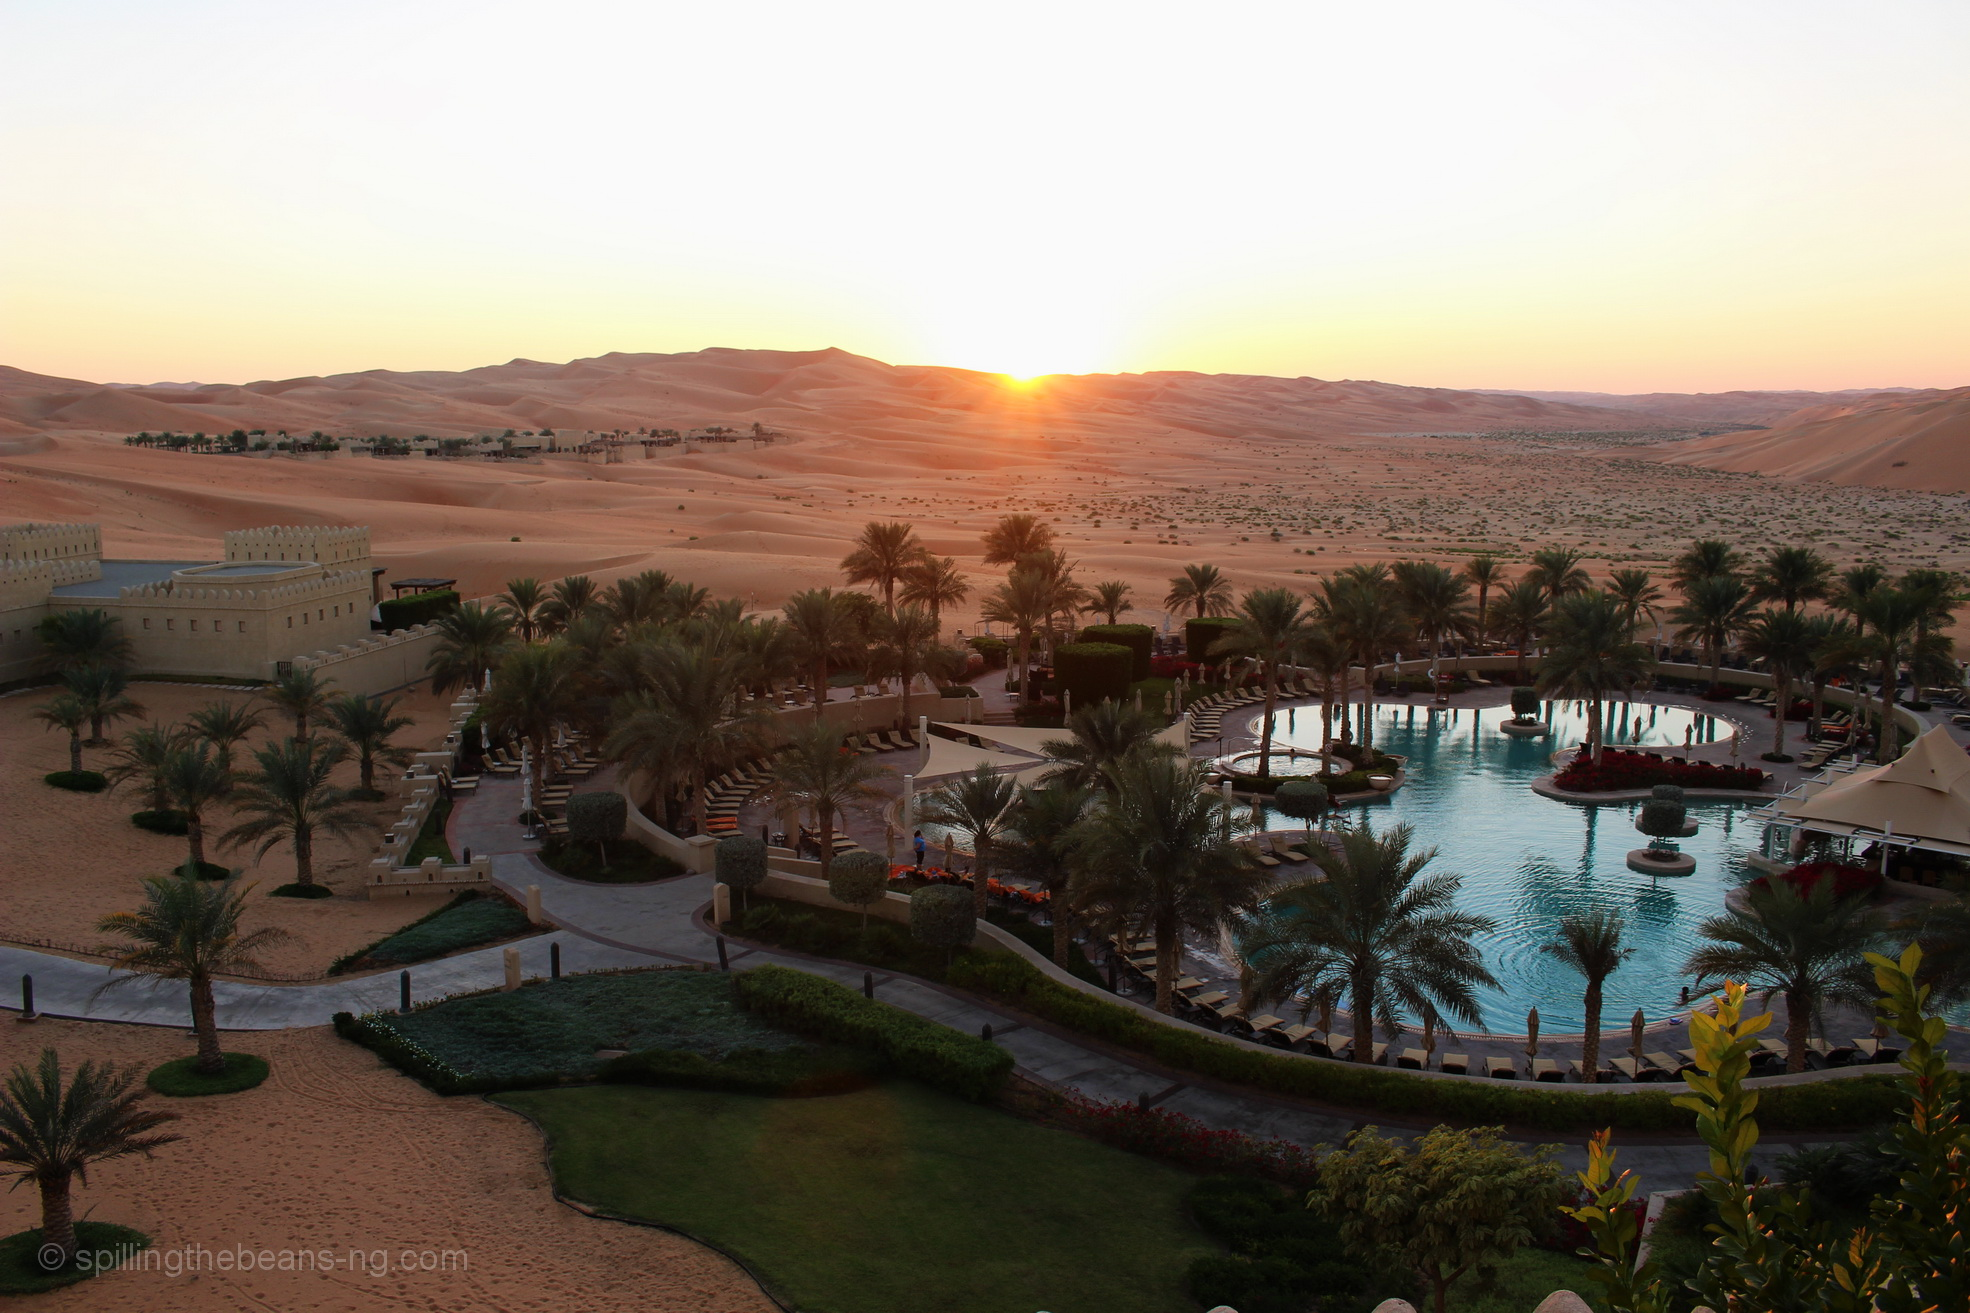 Sunset at Qasr Al Sarab - The Empty Quarter